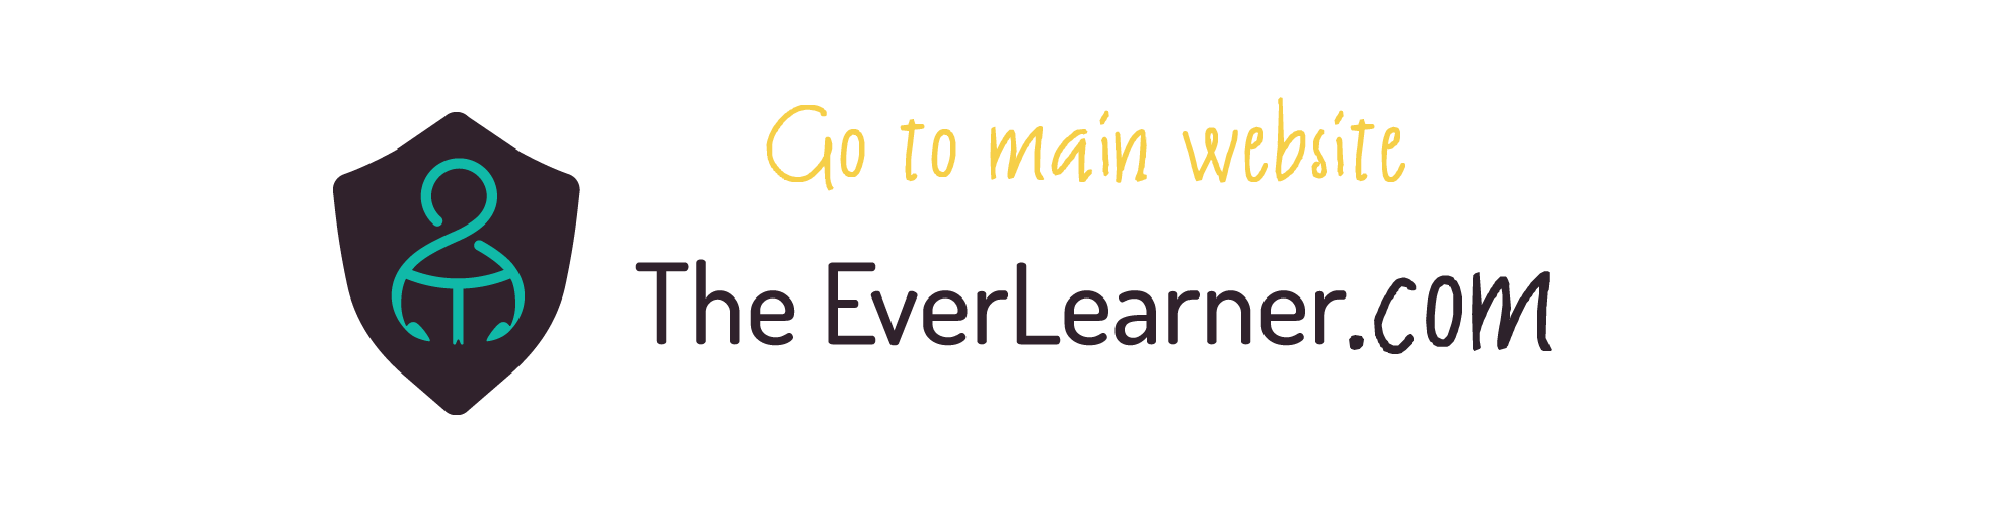 The EverLearner Main site Link